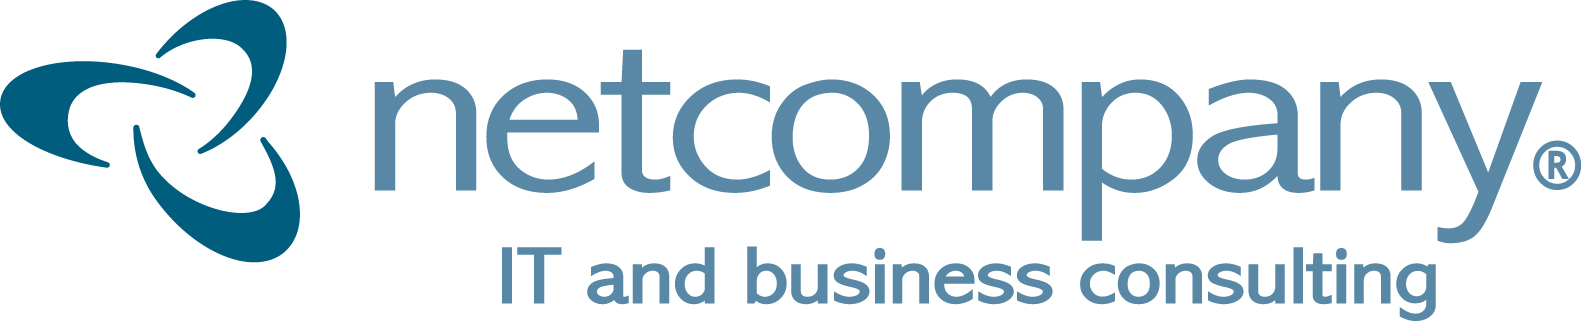 Netcompany logo, IT and business consulting